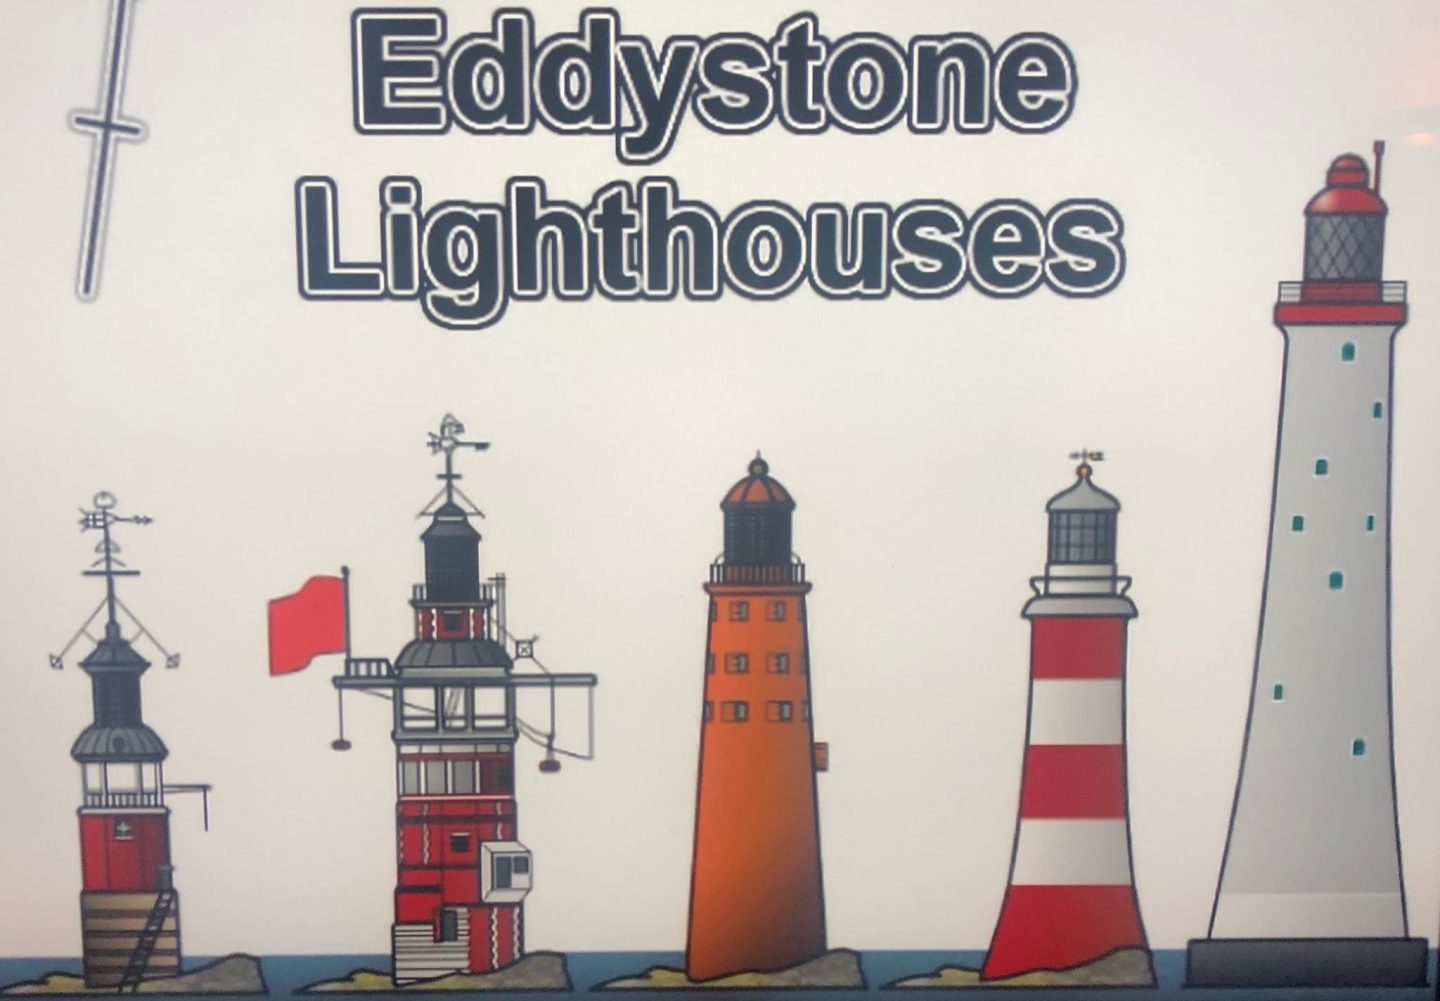 An artistic recreation of all Eddystone lighthouses together.